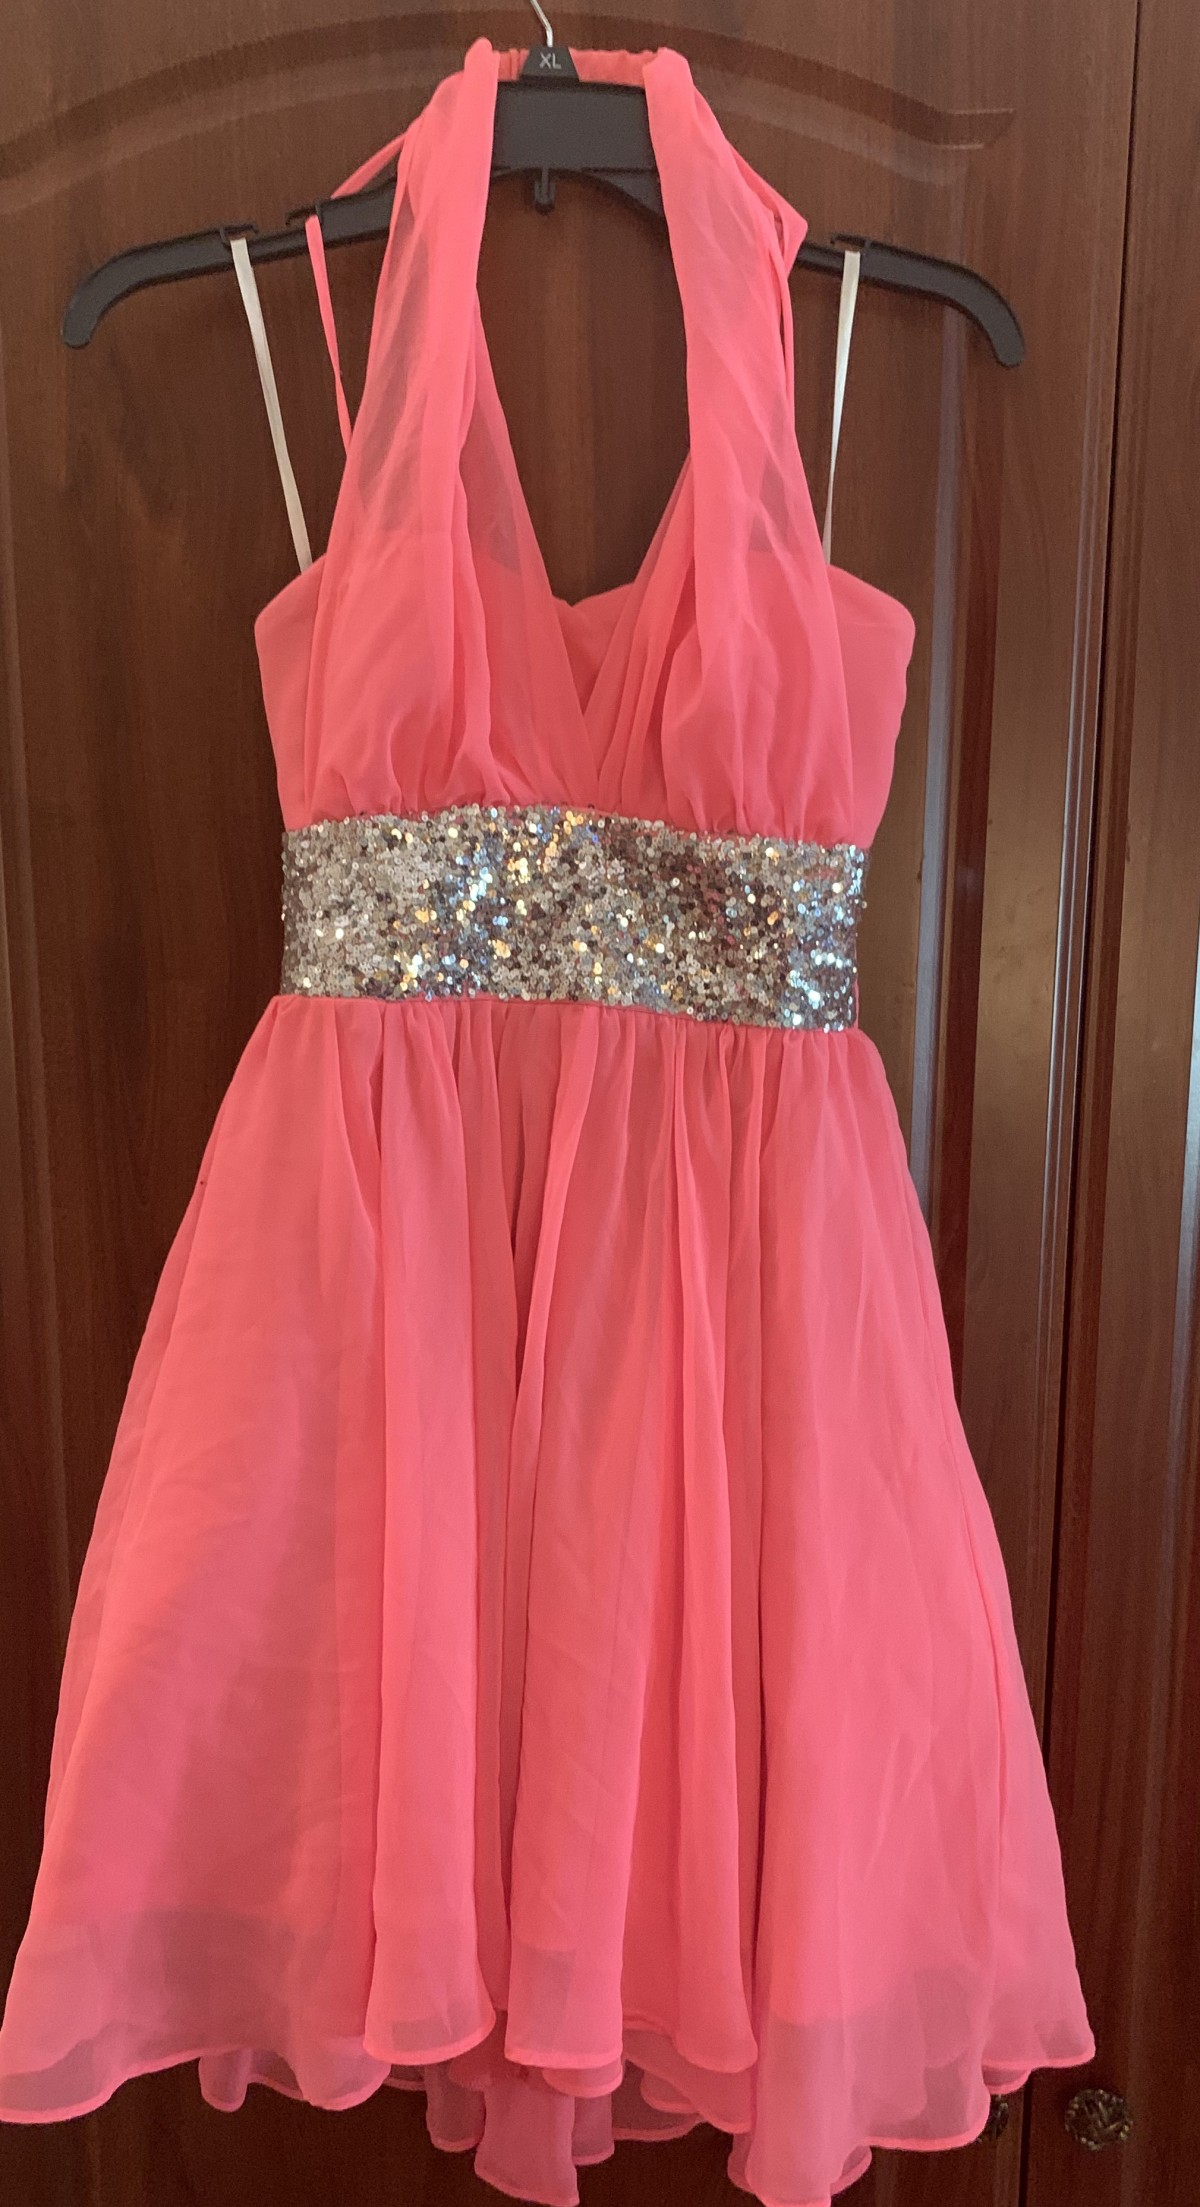 Hot Pink sequined dress designed by DEB